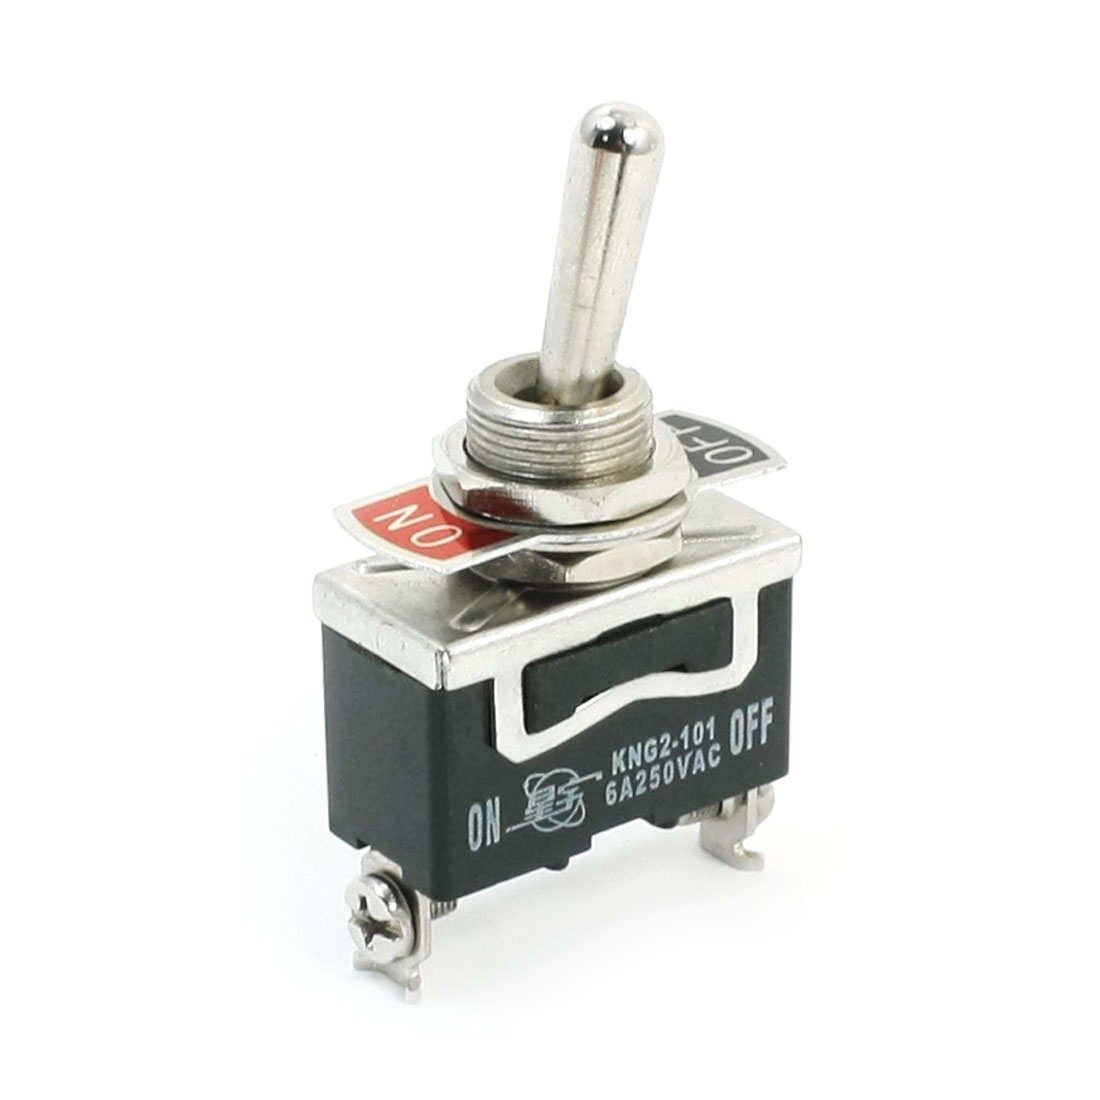 12mm Panel Cutout Dia 2 Position SPST Toggle Switch AC 250V 6A